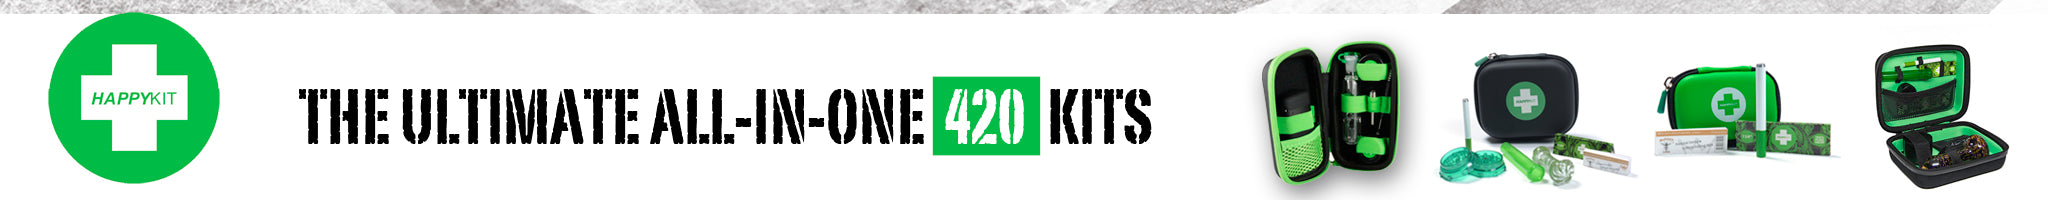 The Ultimate All-In-One 420 Kits